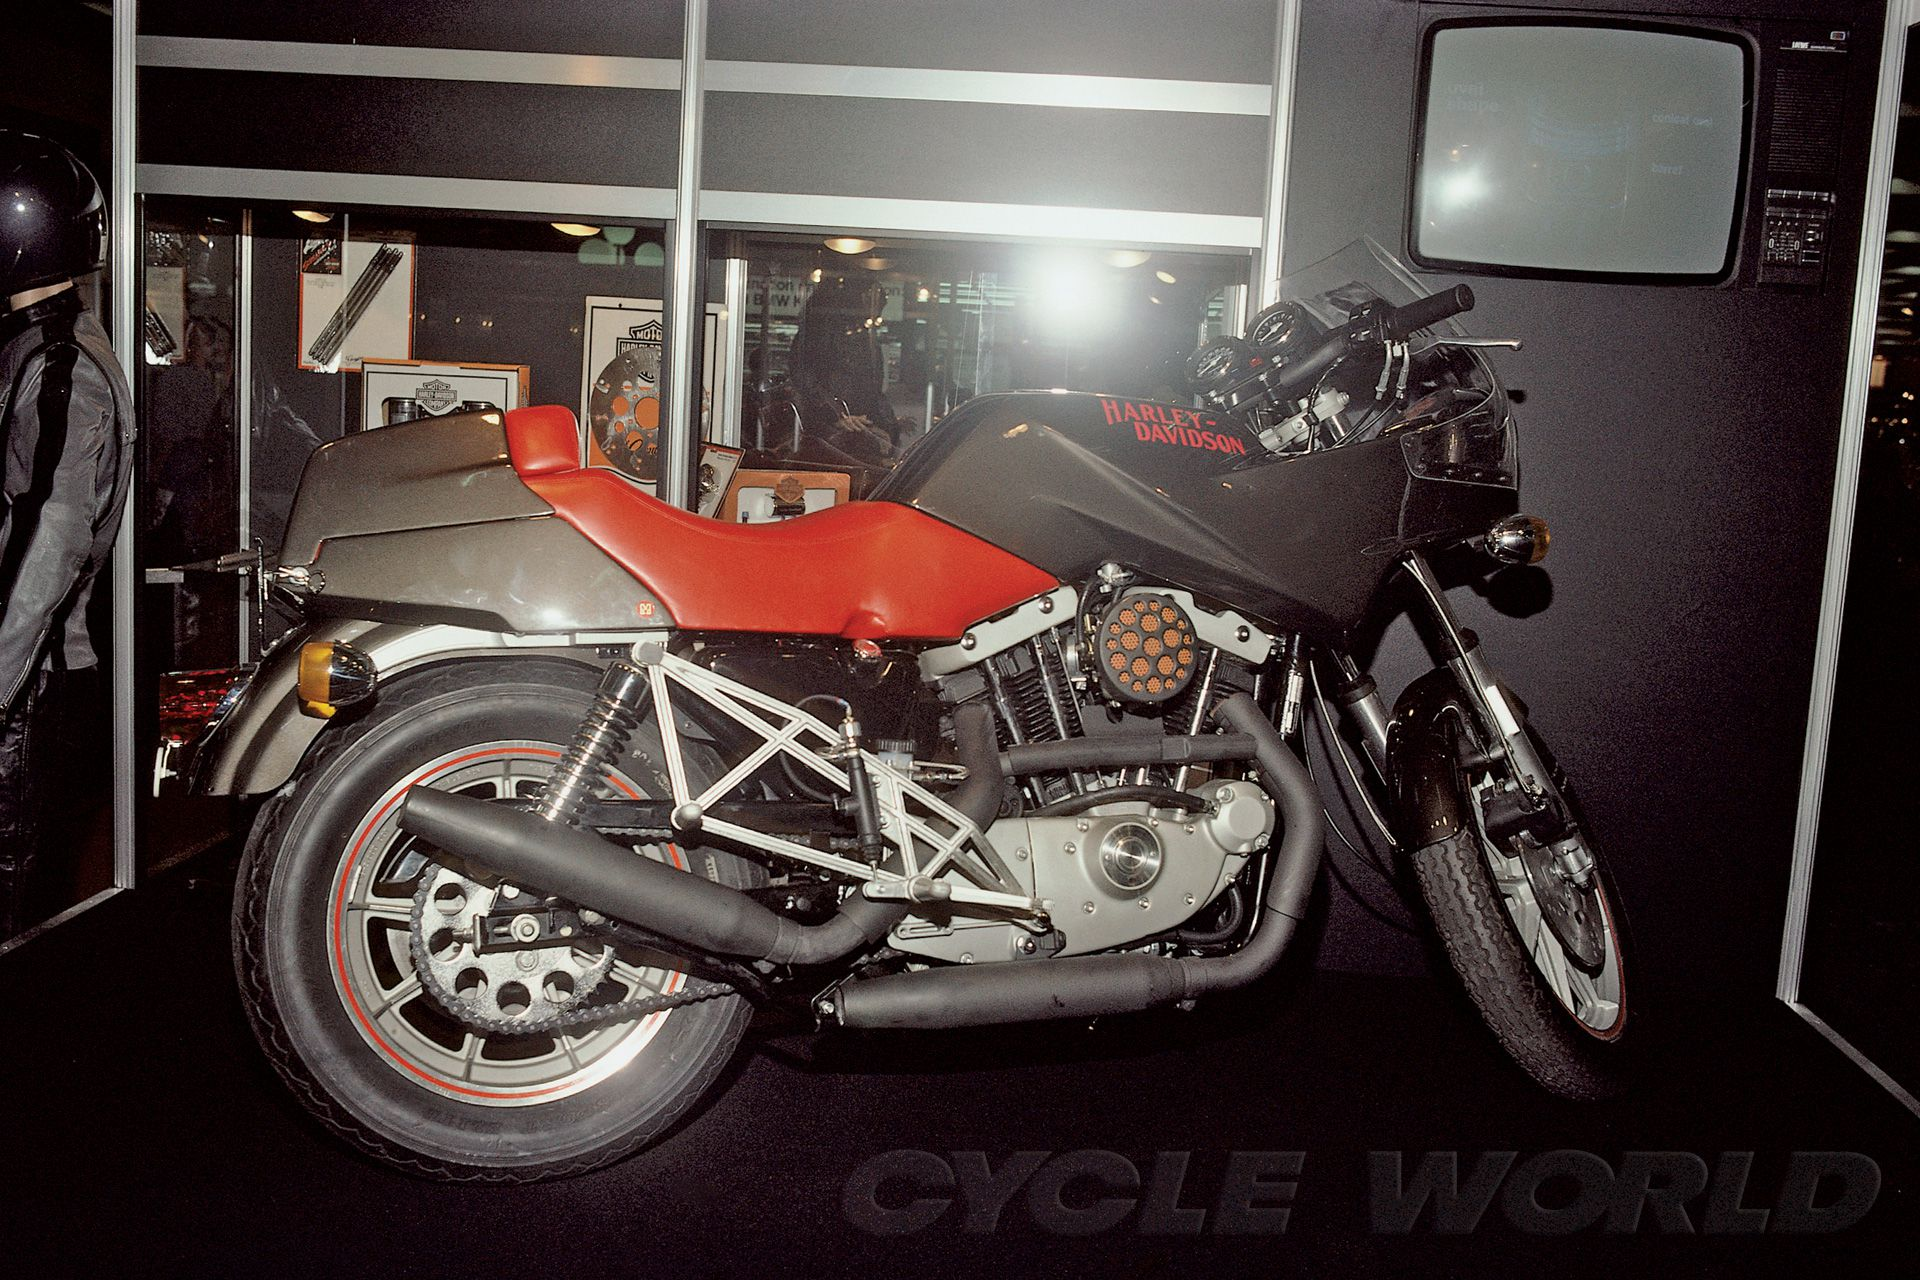 Harley-Davidson went big at the 1985 Cologne Show with this ahead-of-its-time Café Racer concept.